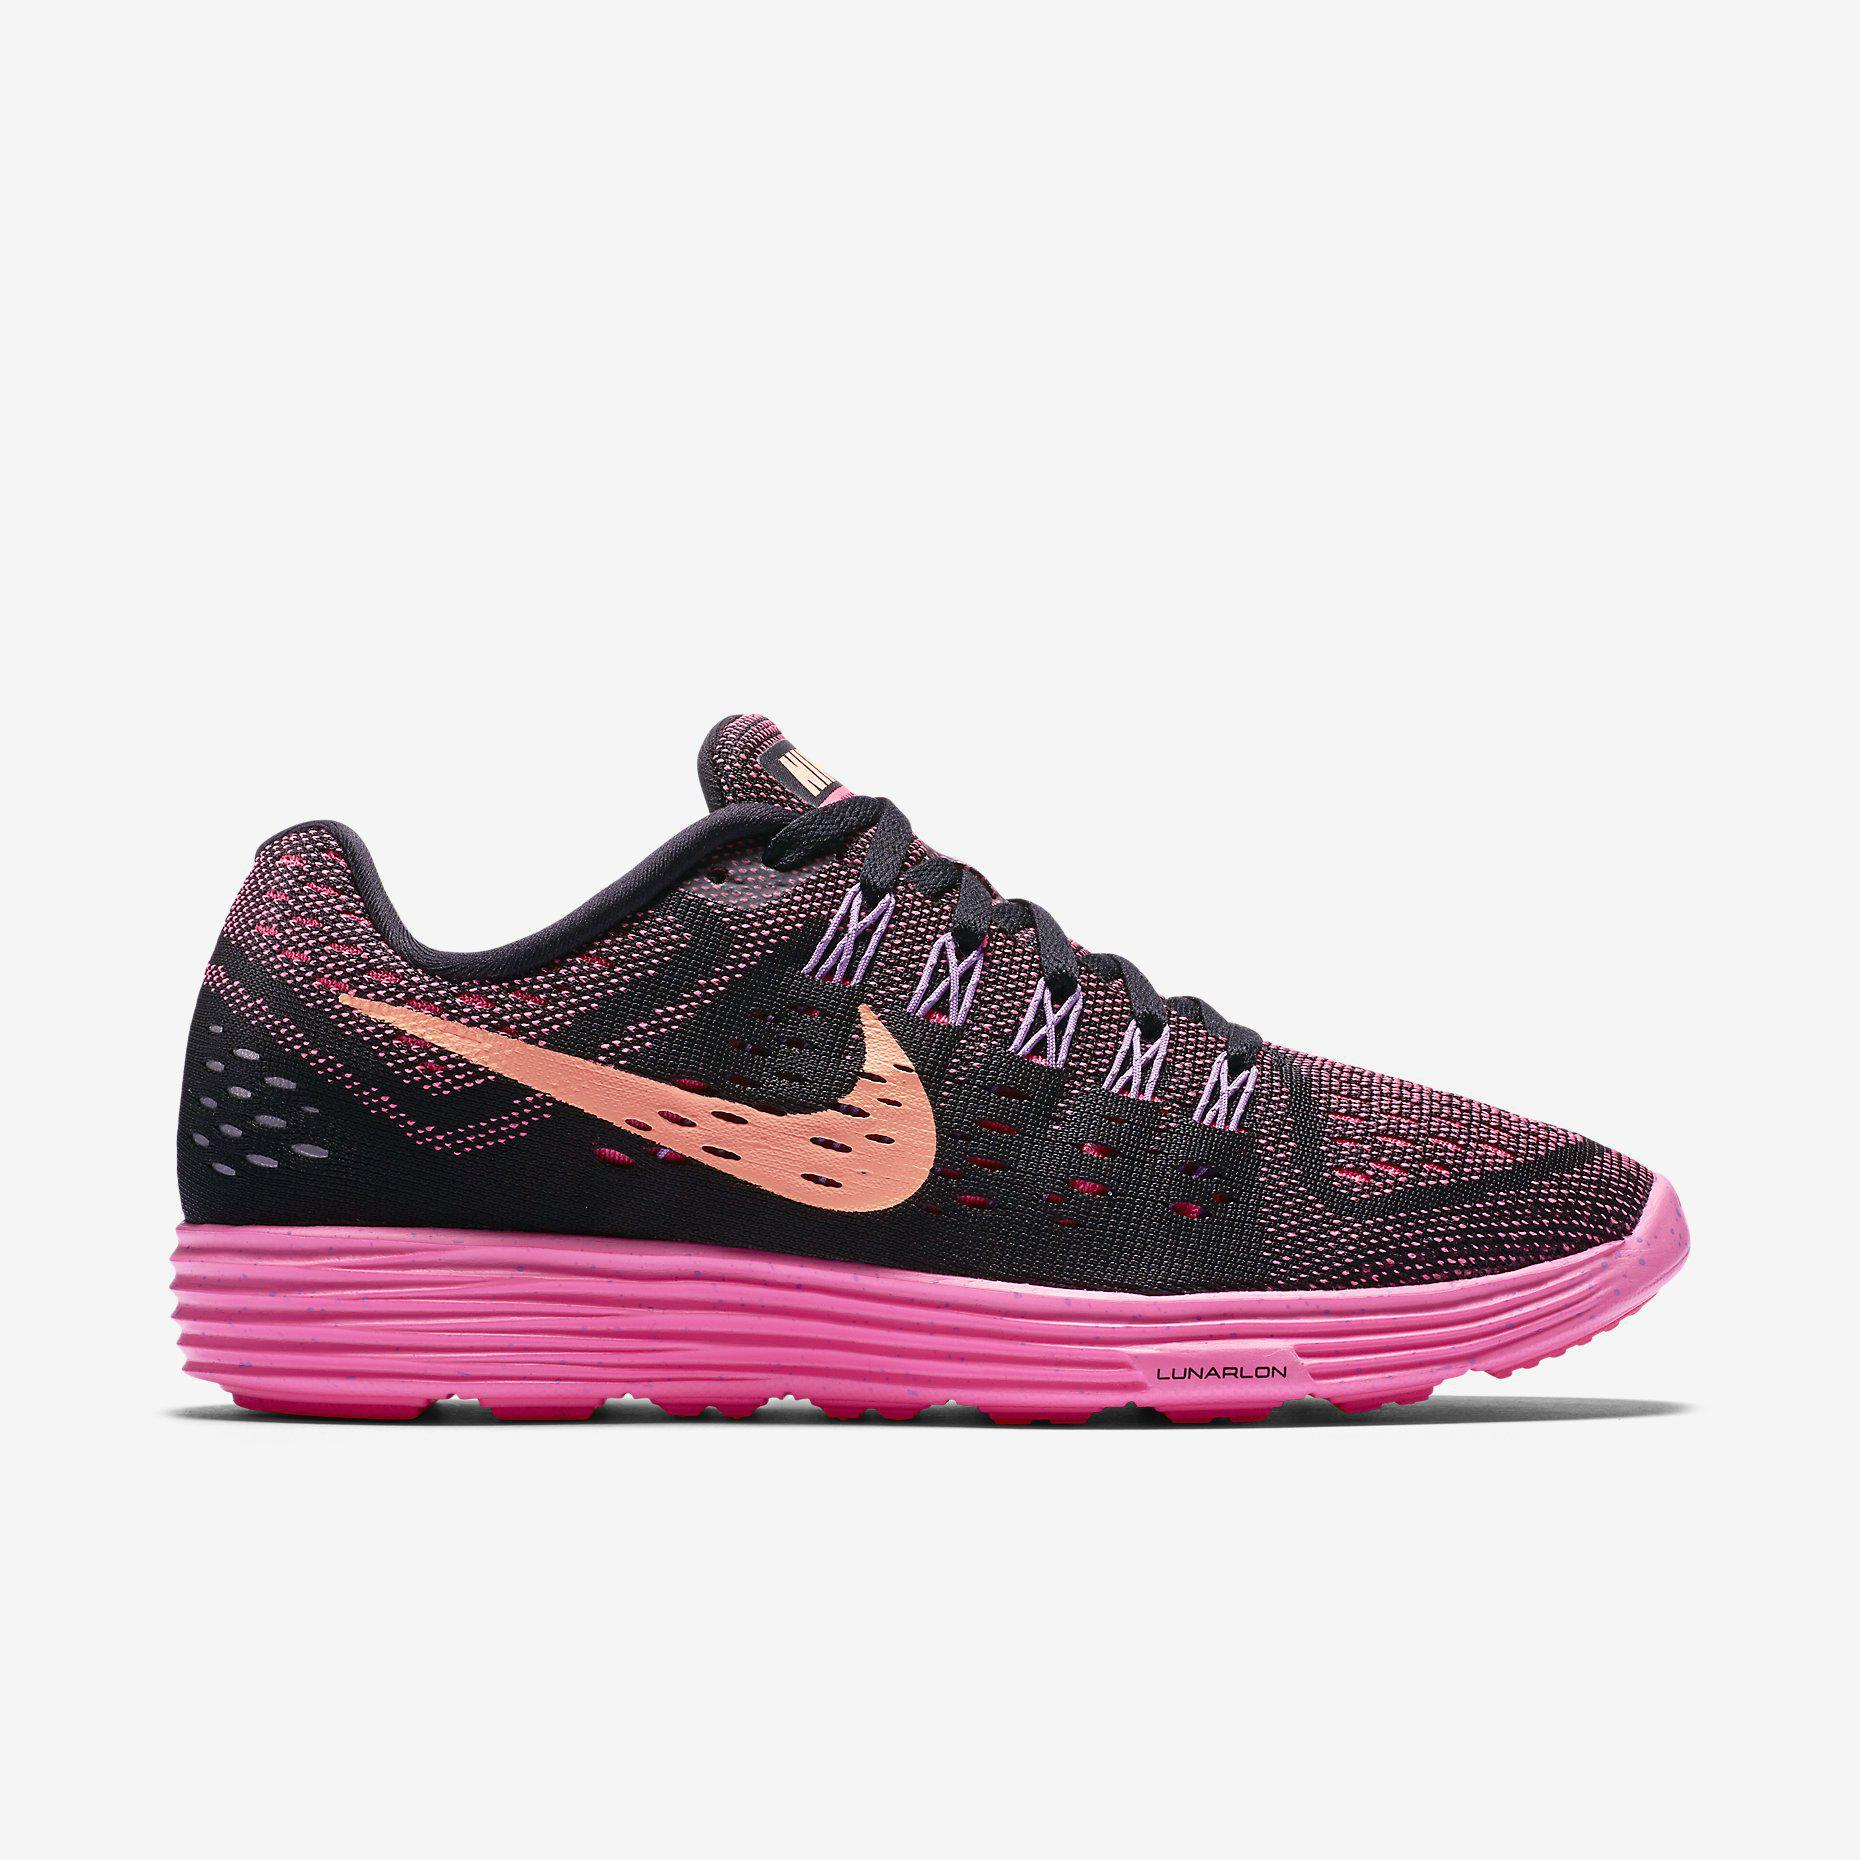 Nike Womens LunarTempo Running Shoes - Black/Pink Pow